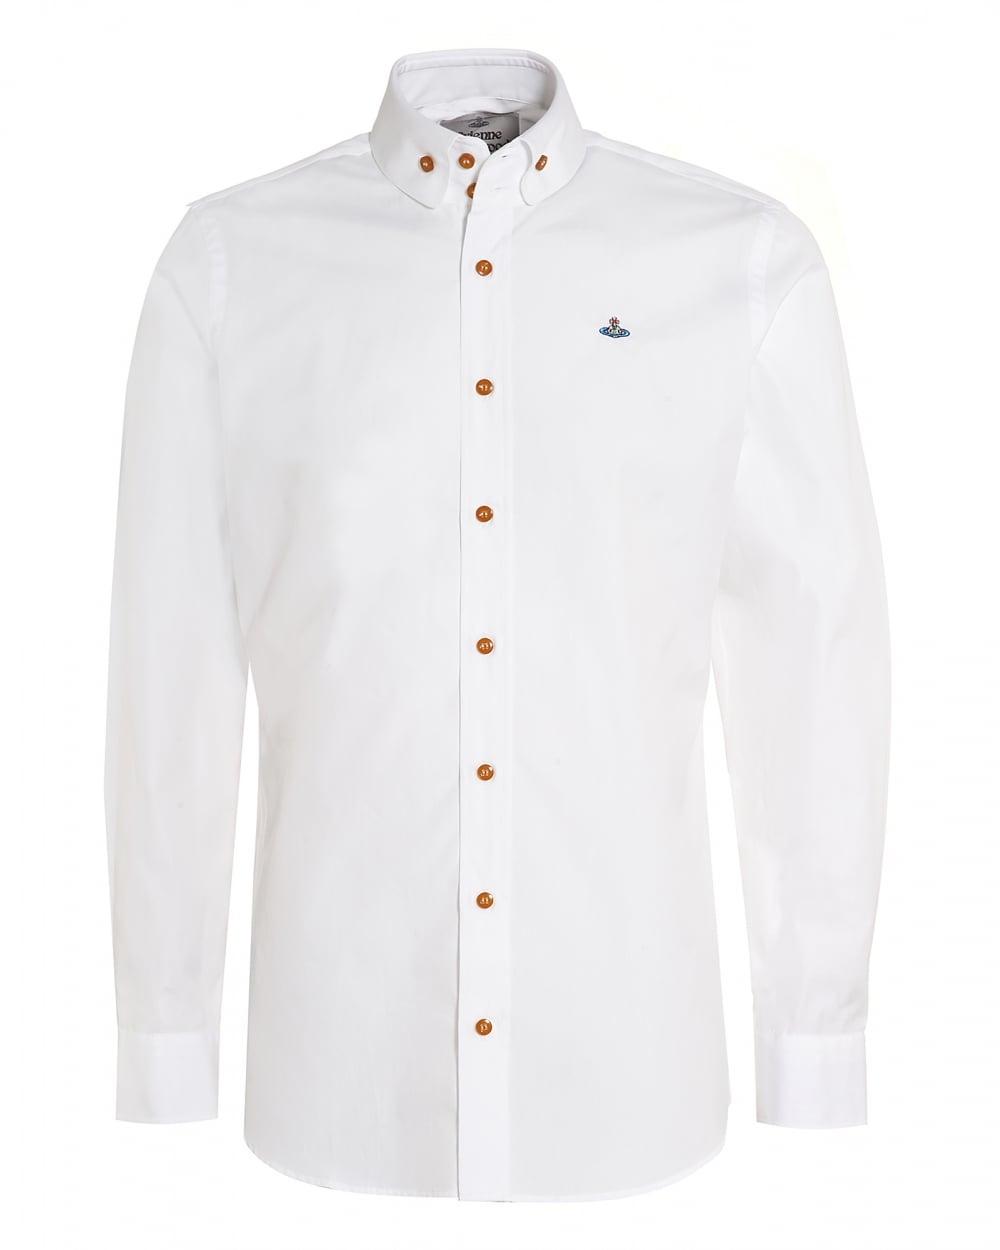 Vivienne Westwood Mens Rounded Collar Shirt White Orb Cotton Shirt